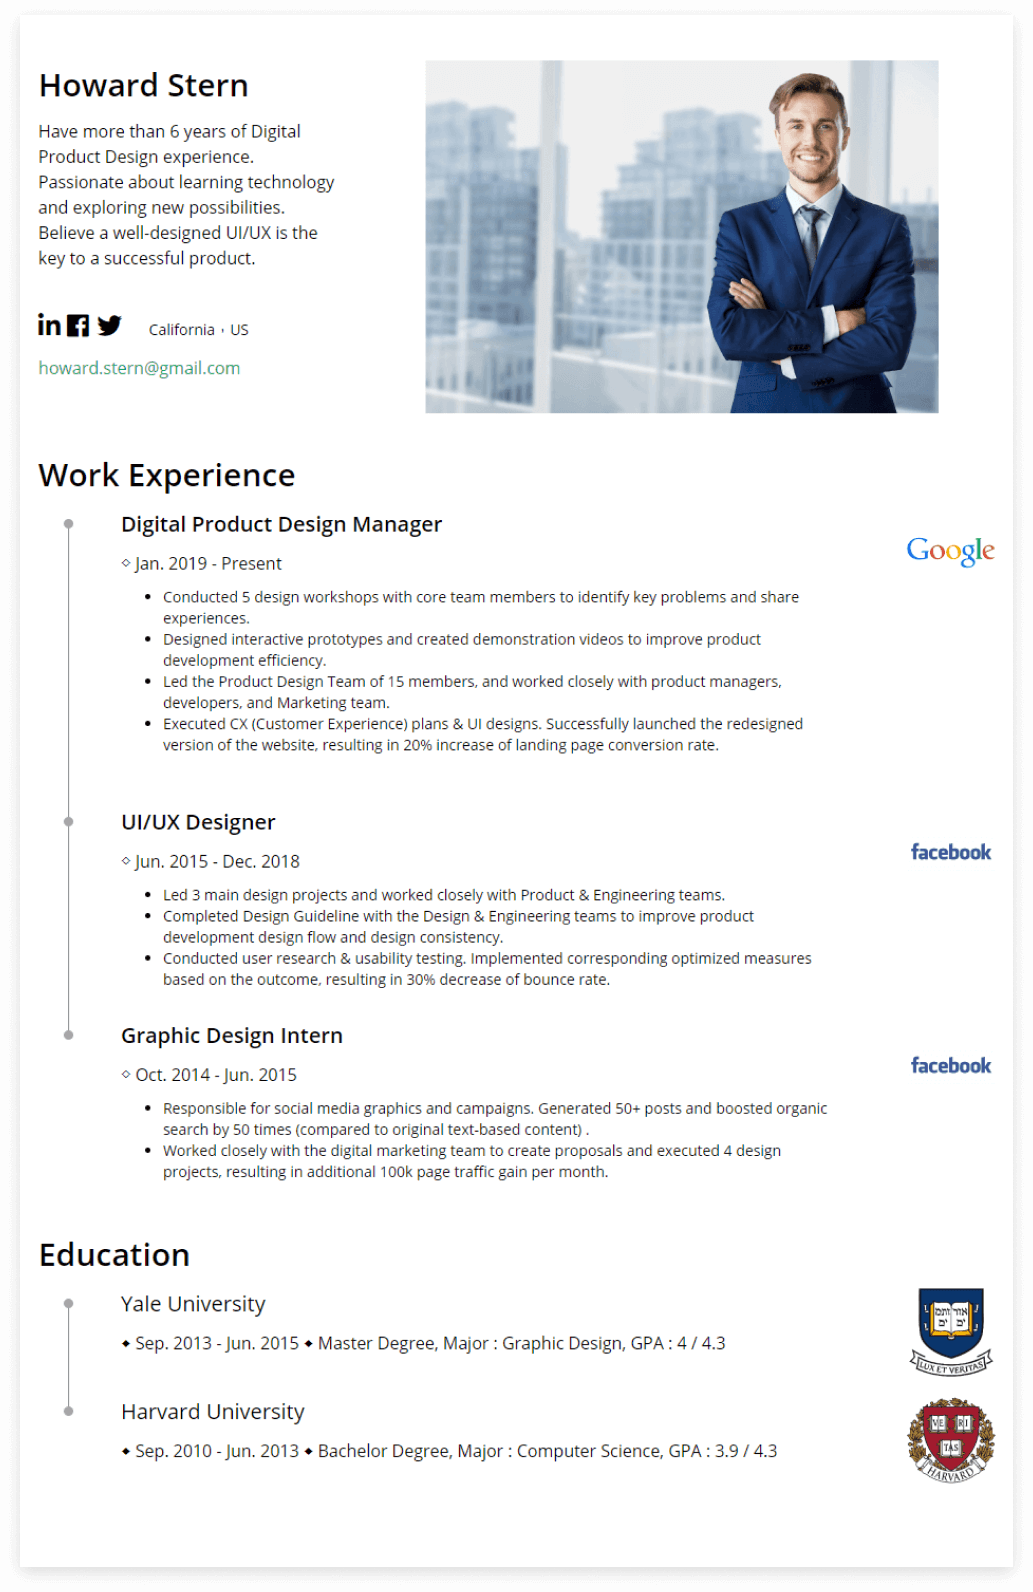 Free Resume Templates & Formats|Create a Professional ...